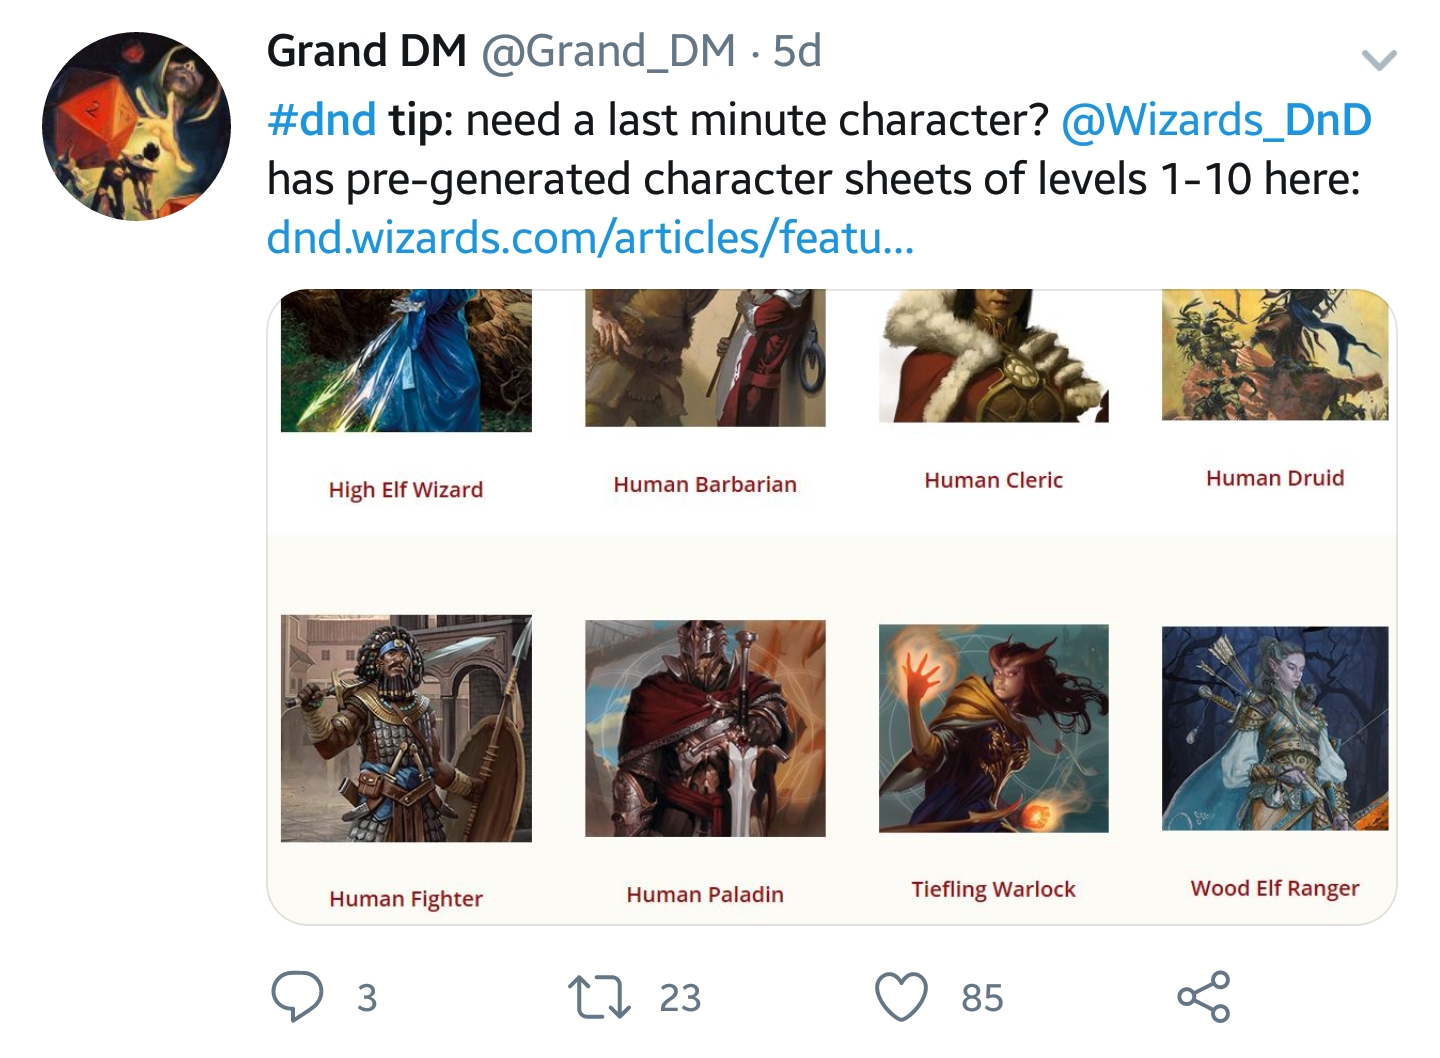 DM Tip: Need a last minute character? Dungeons and Dragons has per-generated character sheets of levels 1-10 on their website